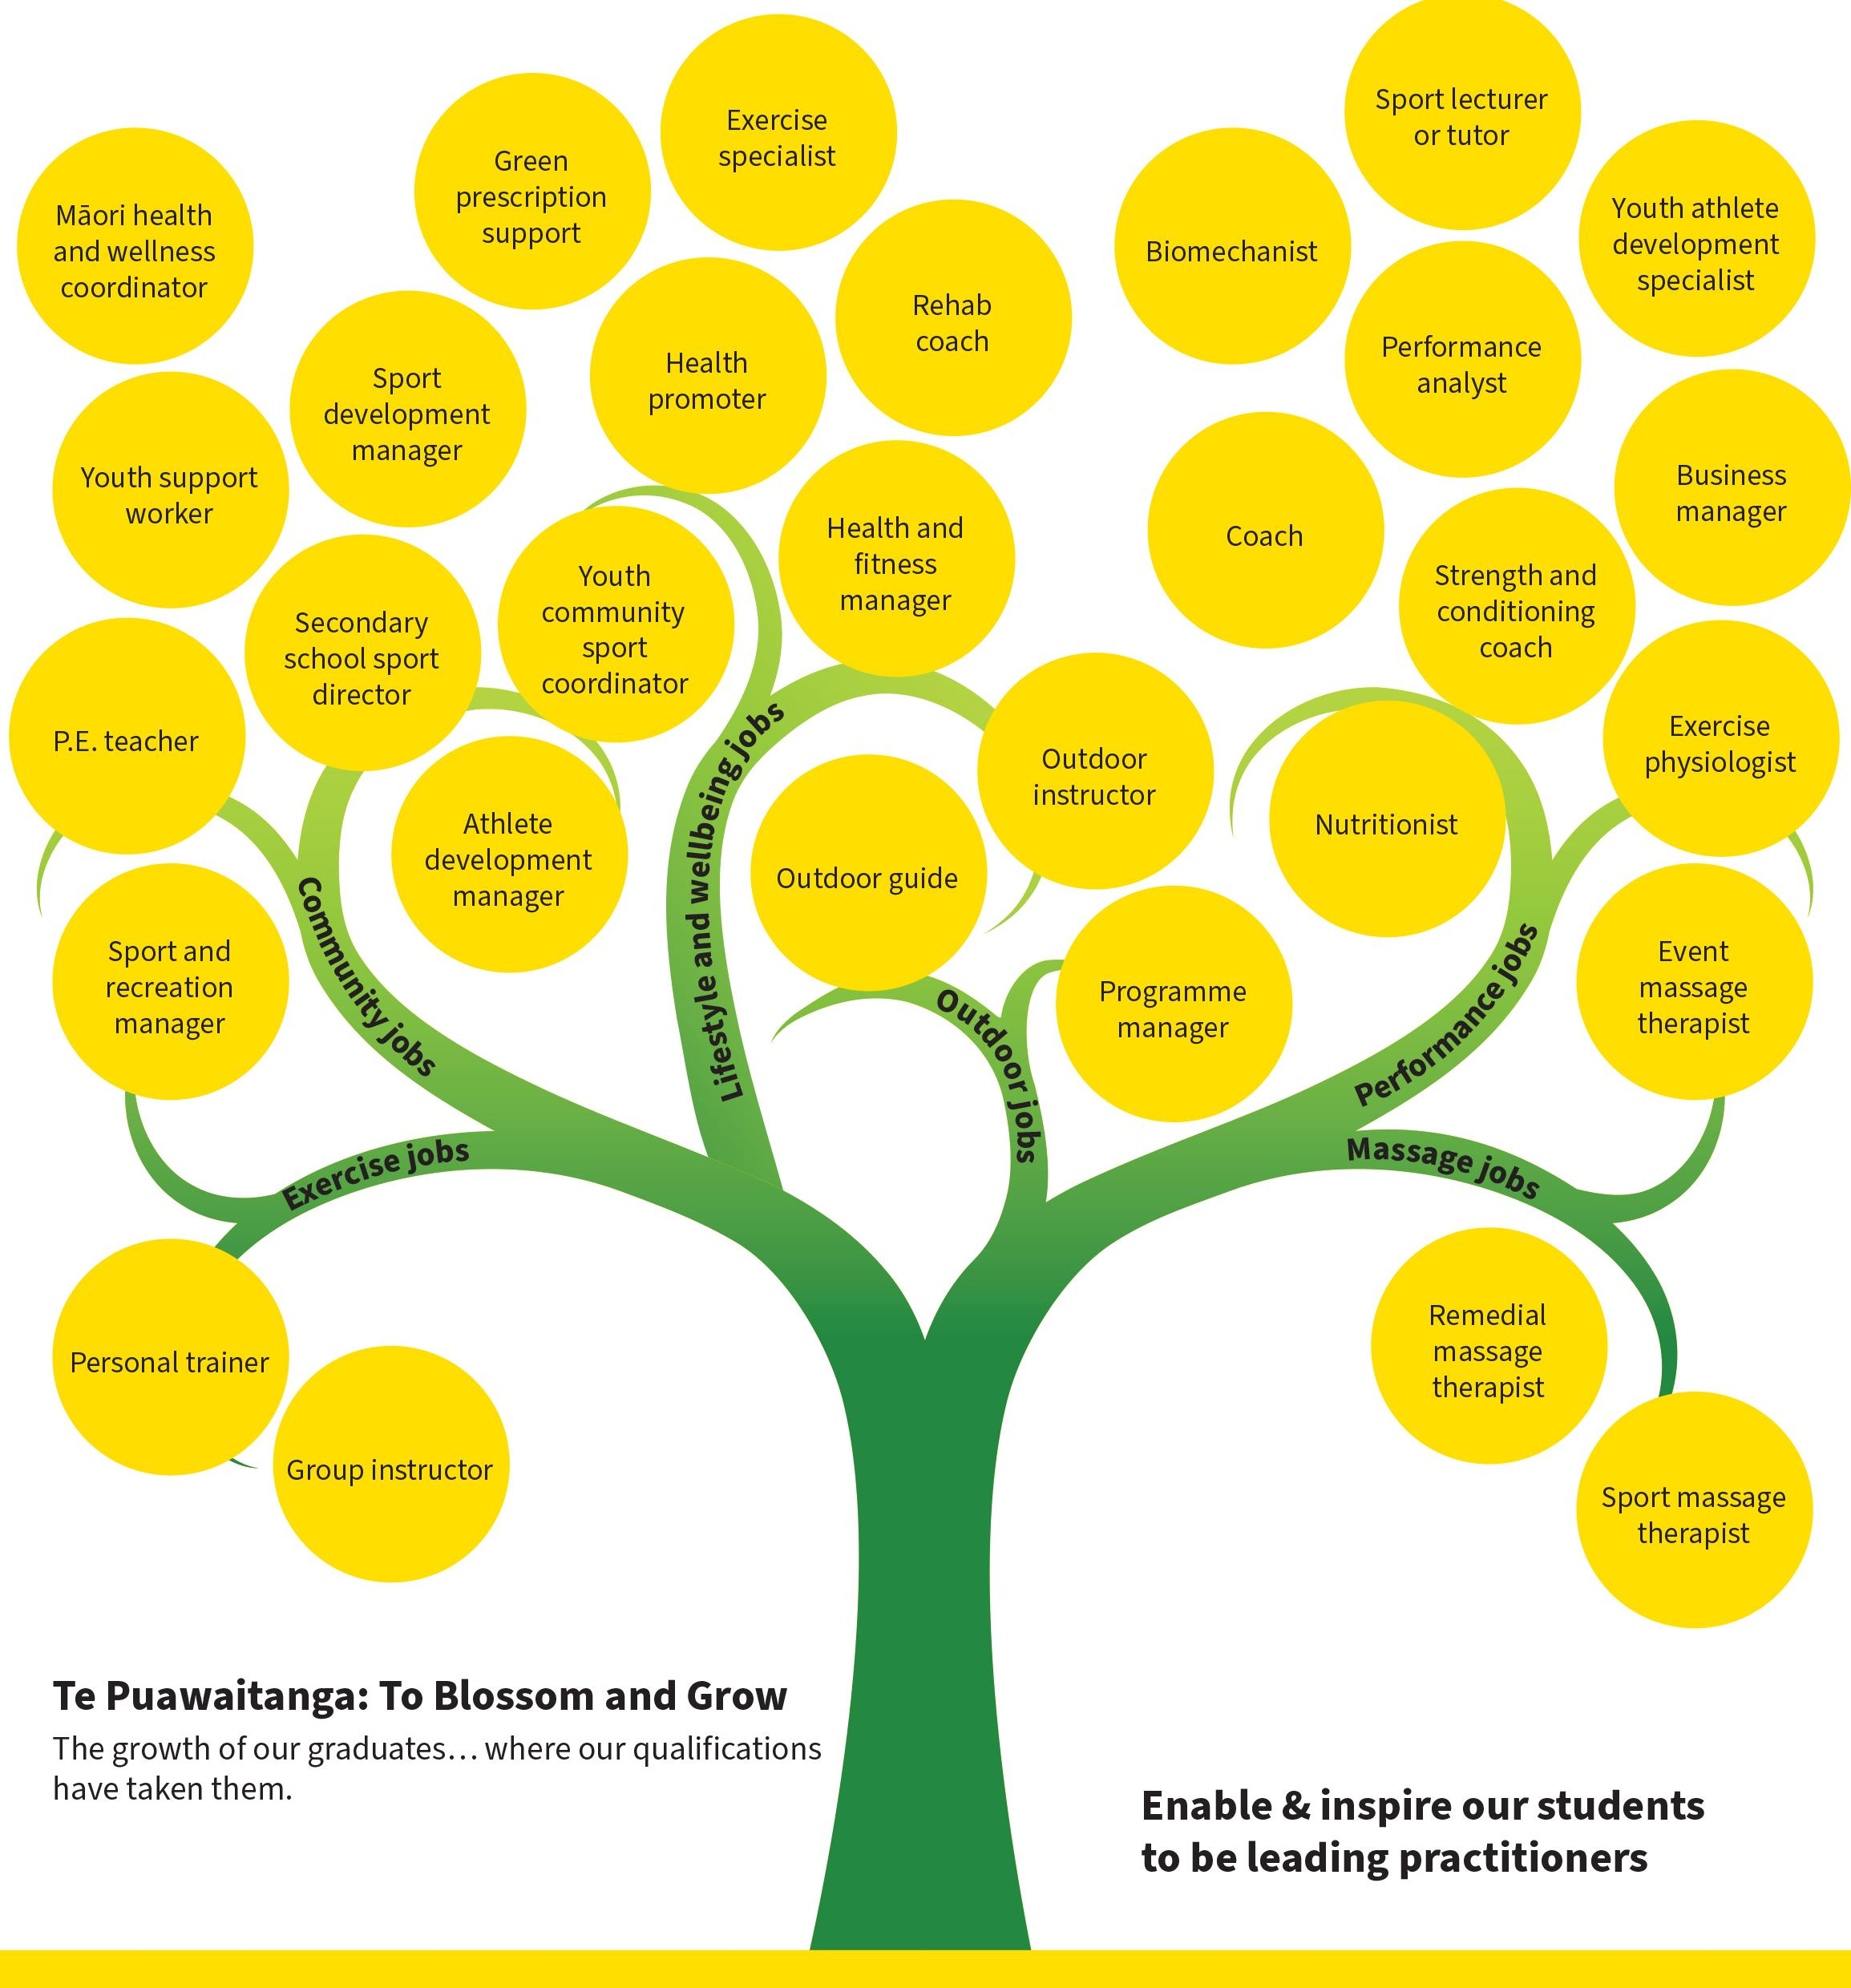 Graduate Sport Tree representing different employment opportunities in the field of sport science